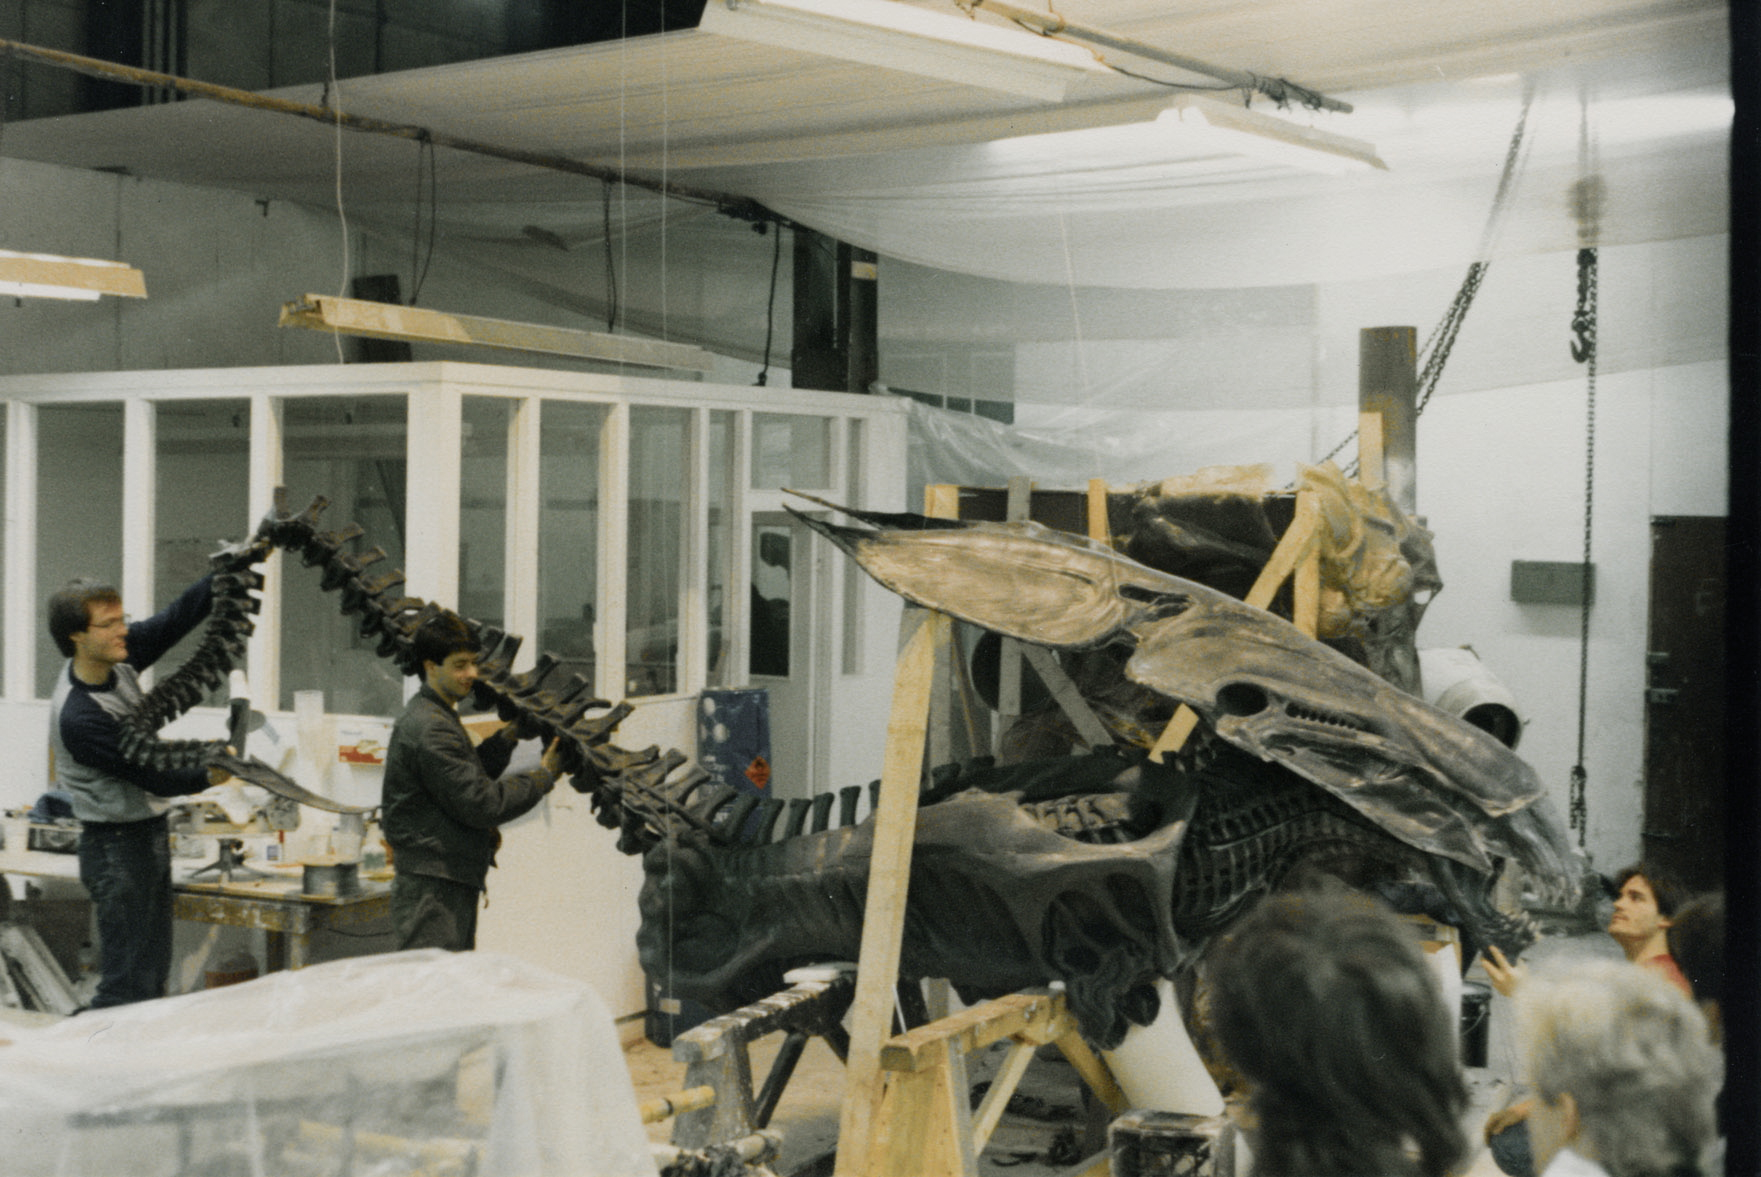 photo tournage coulisse cinema Alien2 47 Photos sur des tournages de films #2  photo featured cinema 2 bonus